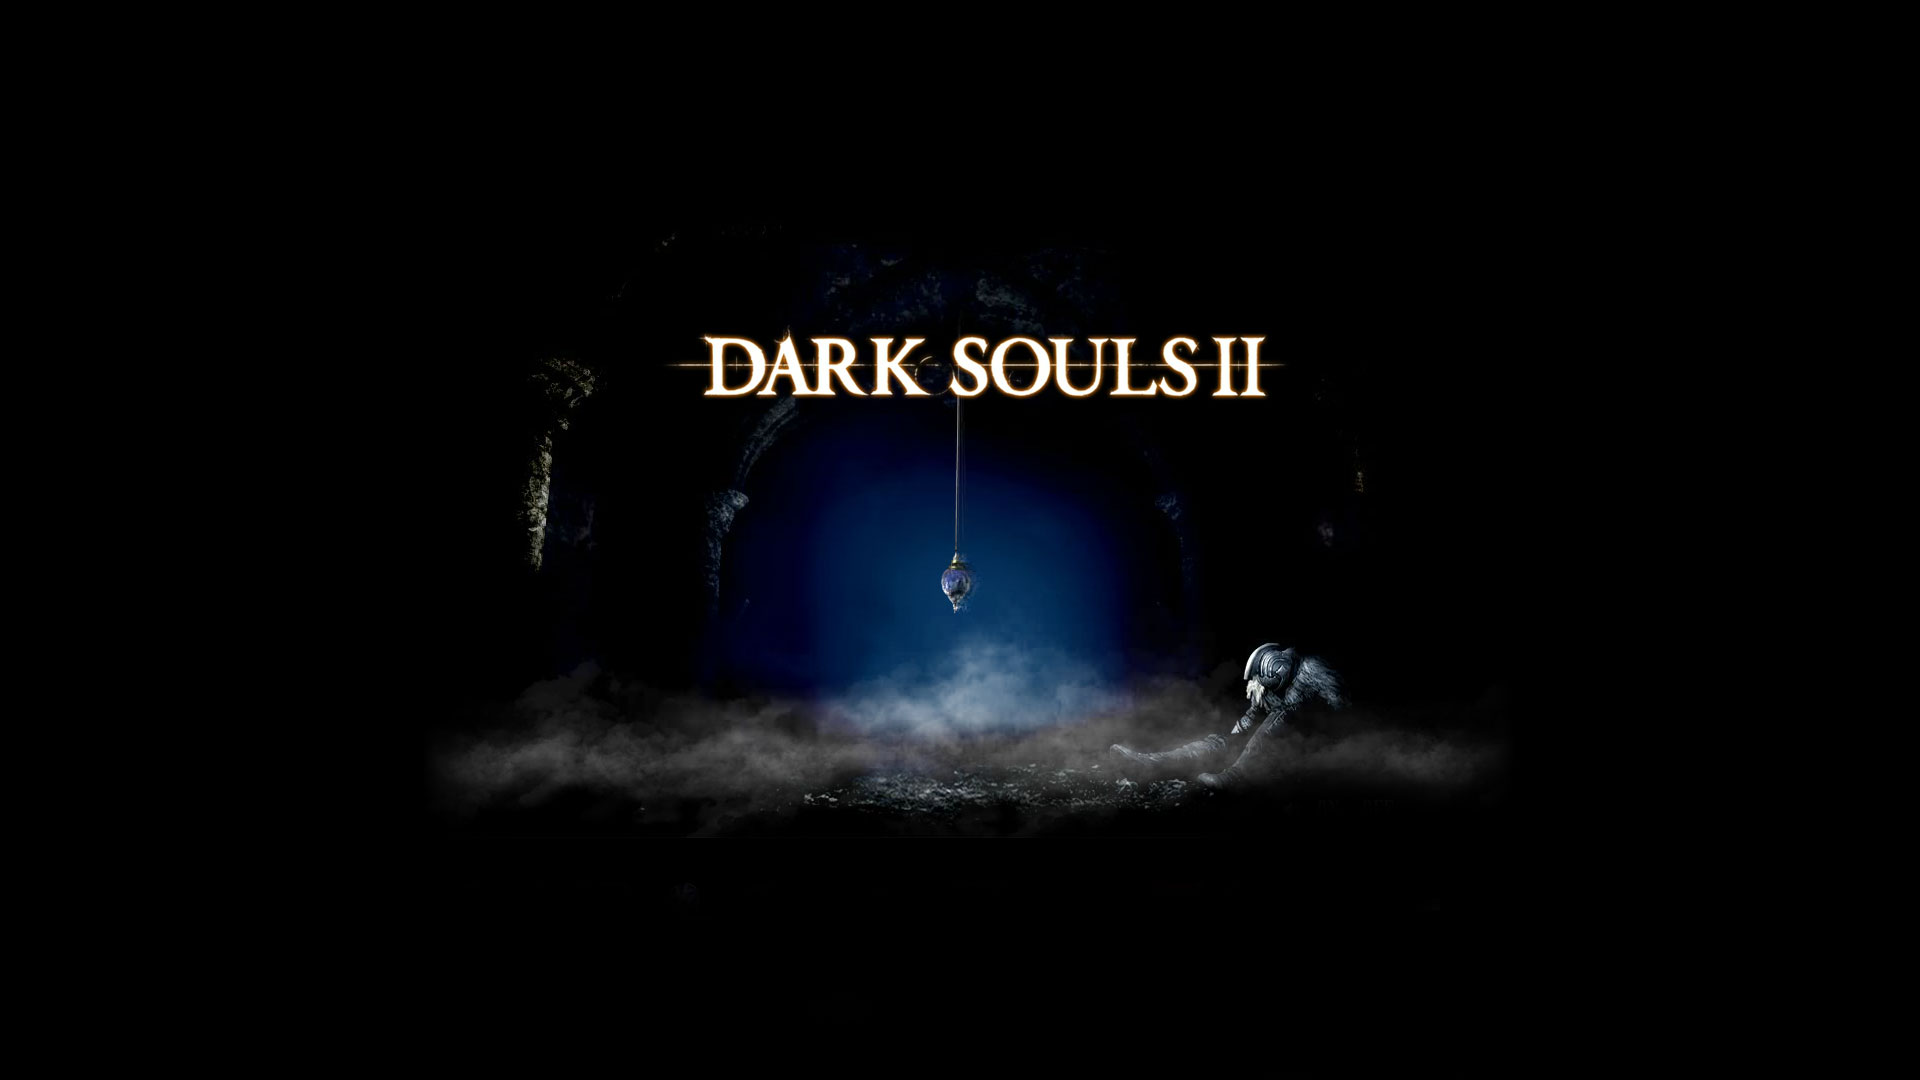 Dark Souls 2 Wallpapers HD Wallpapers Page 2 1920x1080